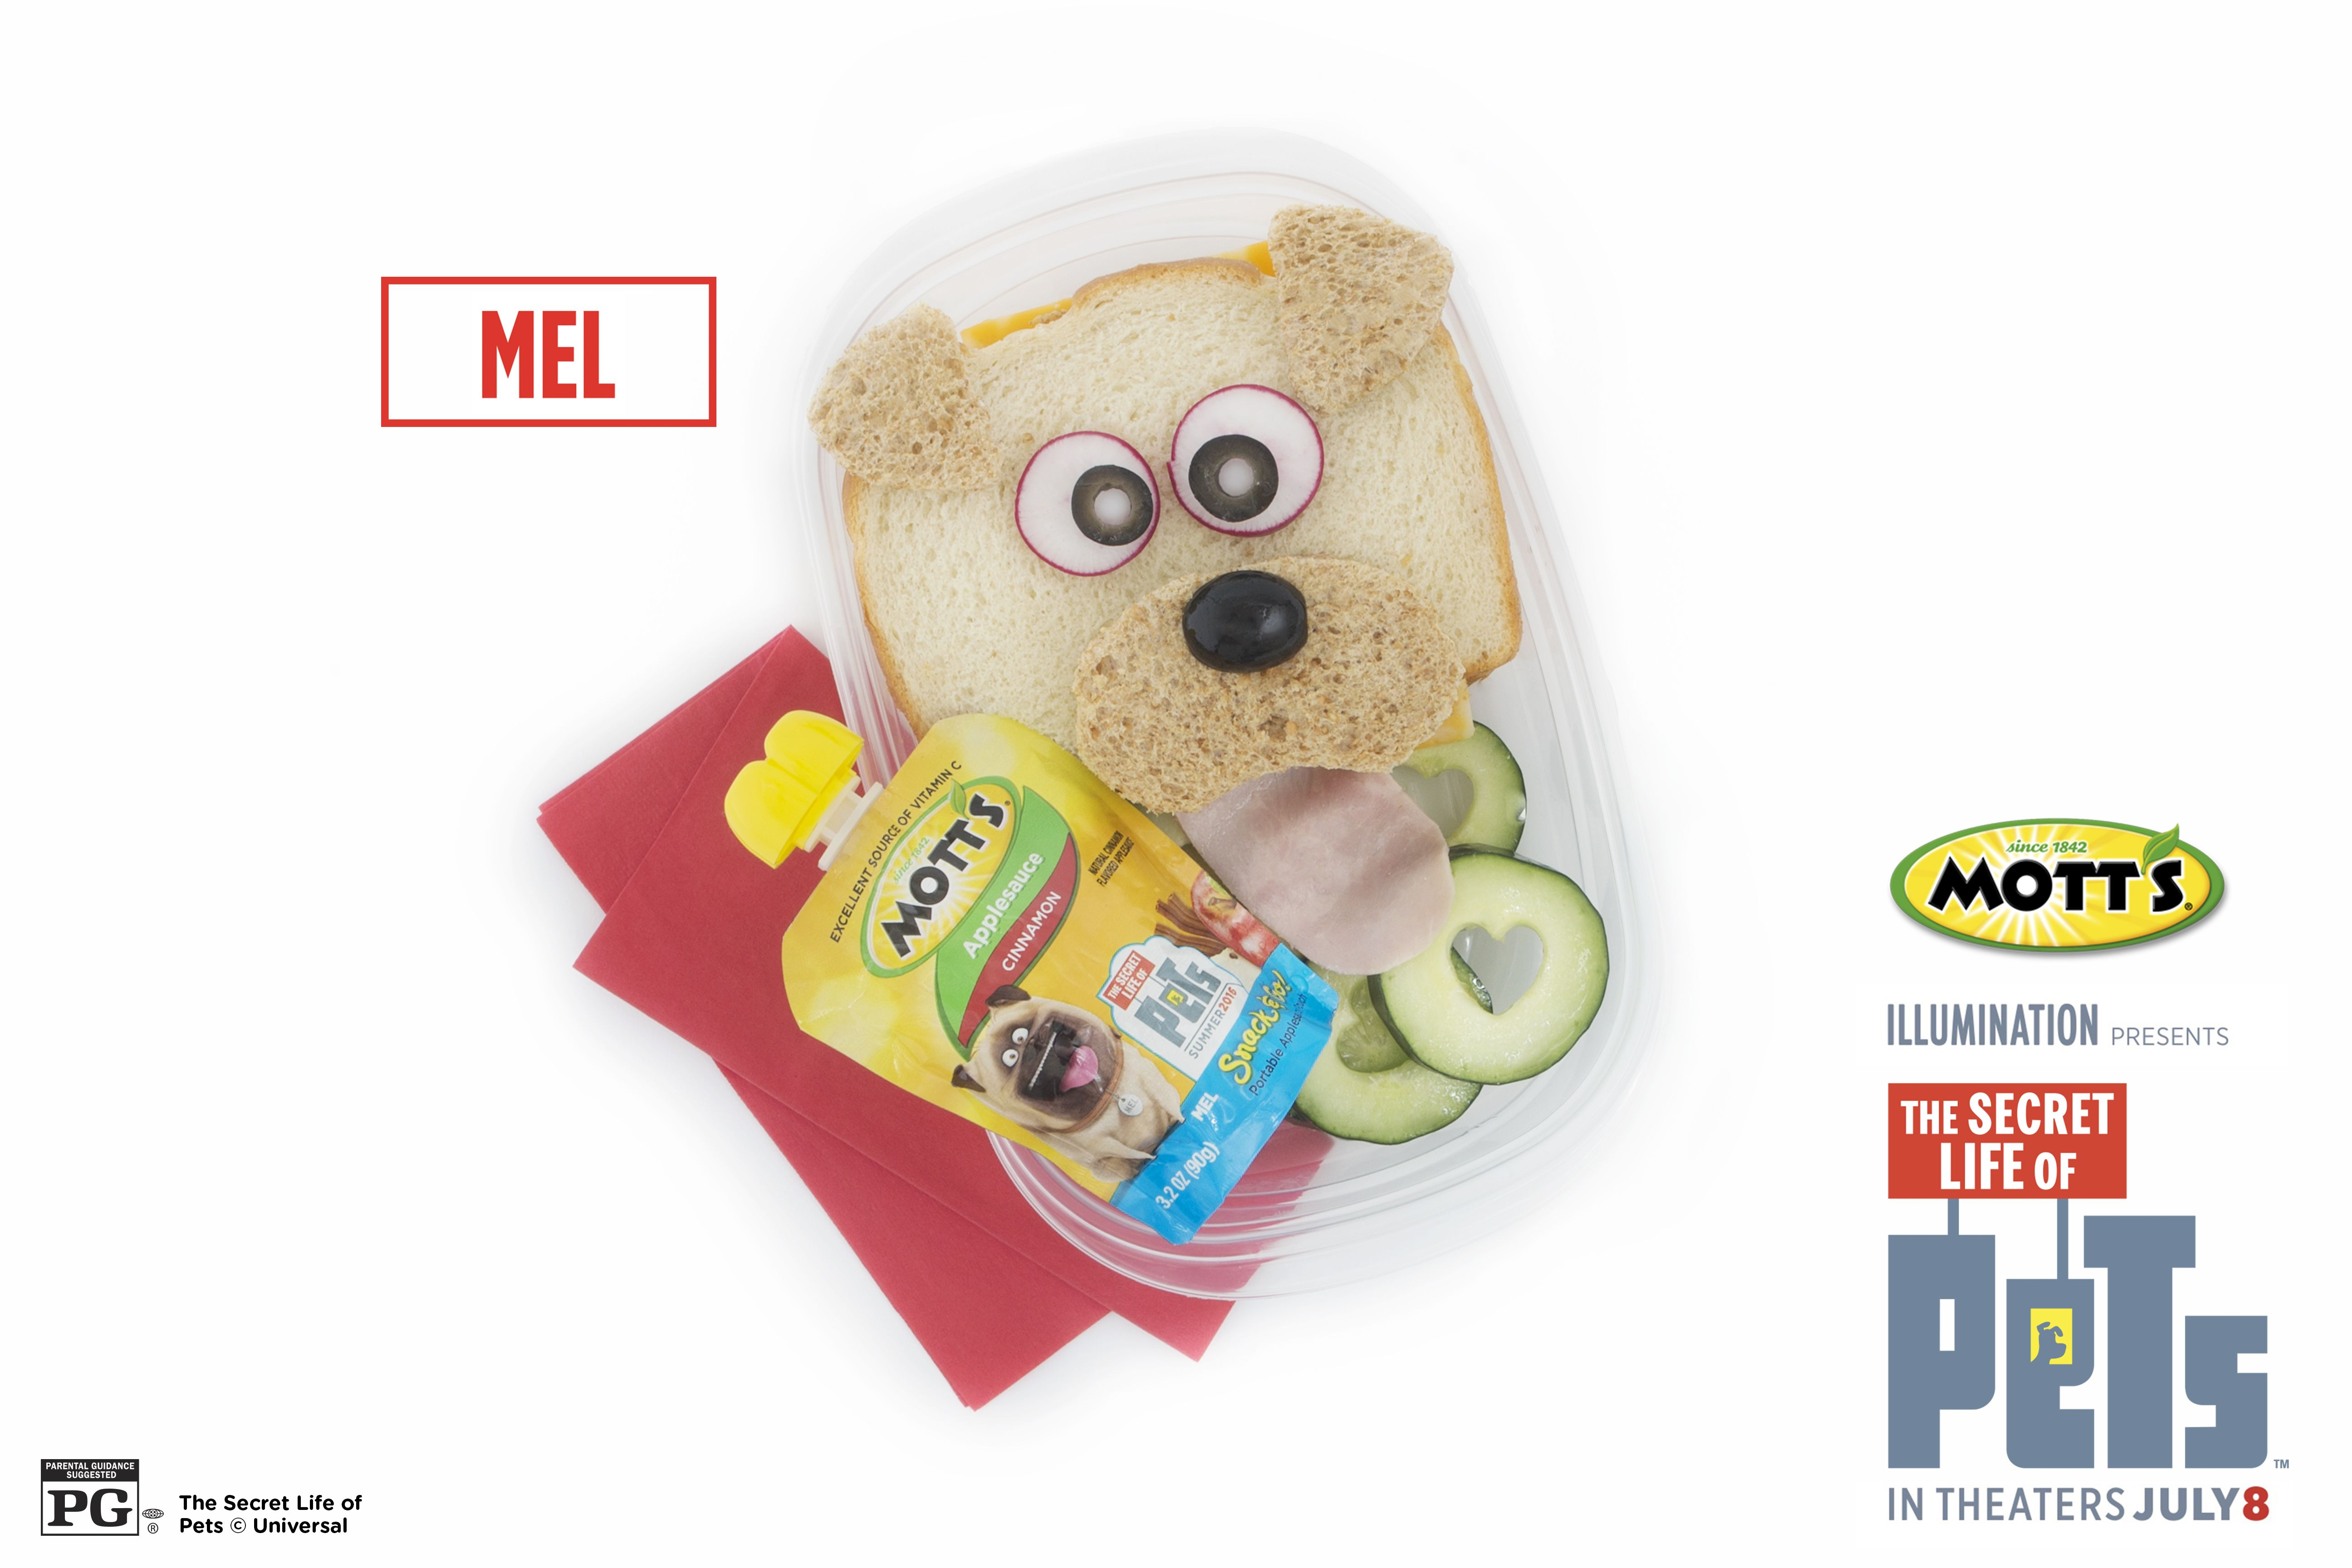 Pack A Character From The Secret Life Of Pets Into Lunch Today Mel Mott S Makes A Dynamic Combo Kids Lunch Secret Life Secret Life Of Pets